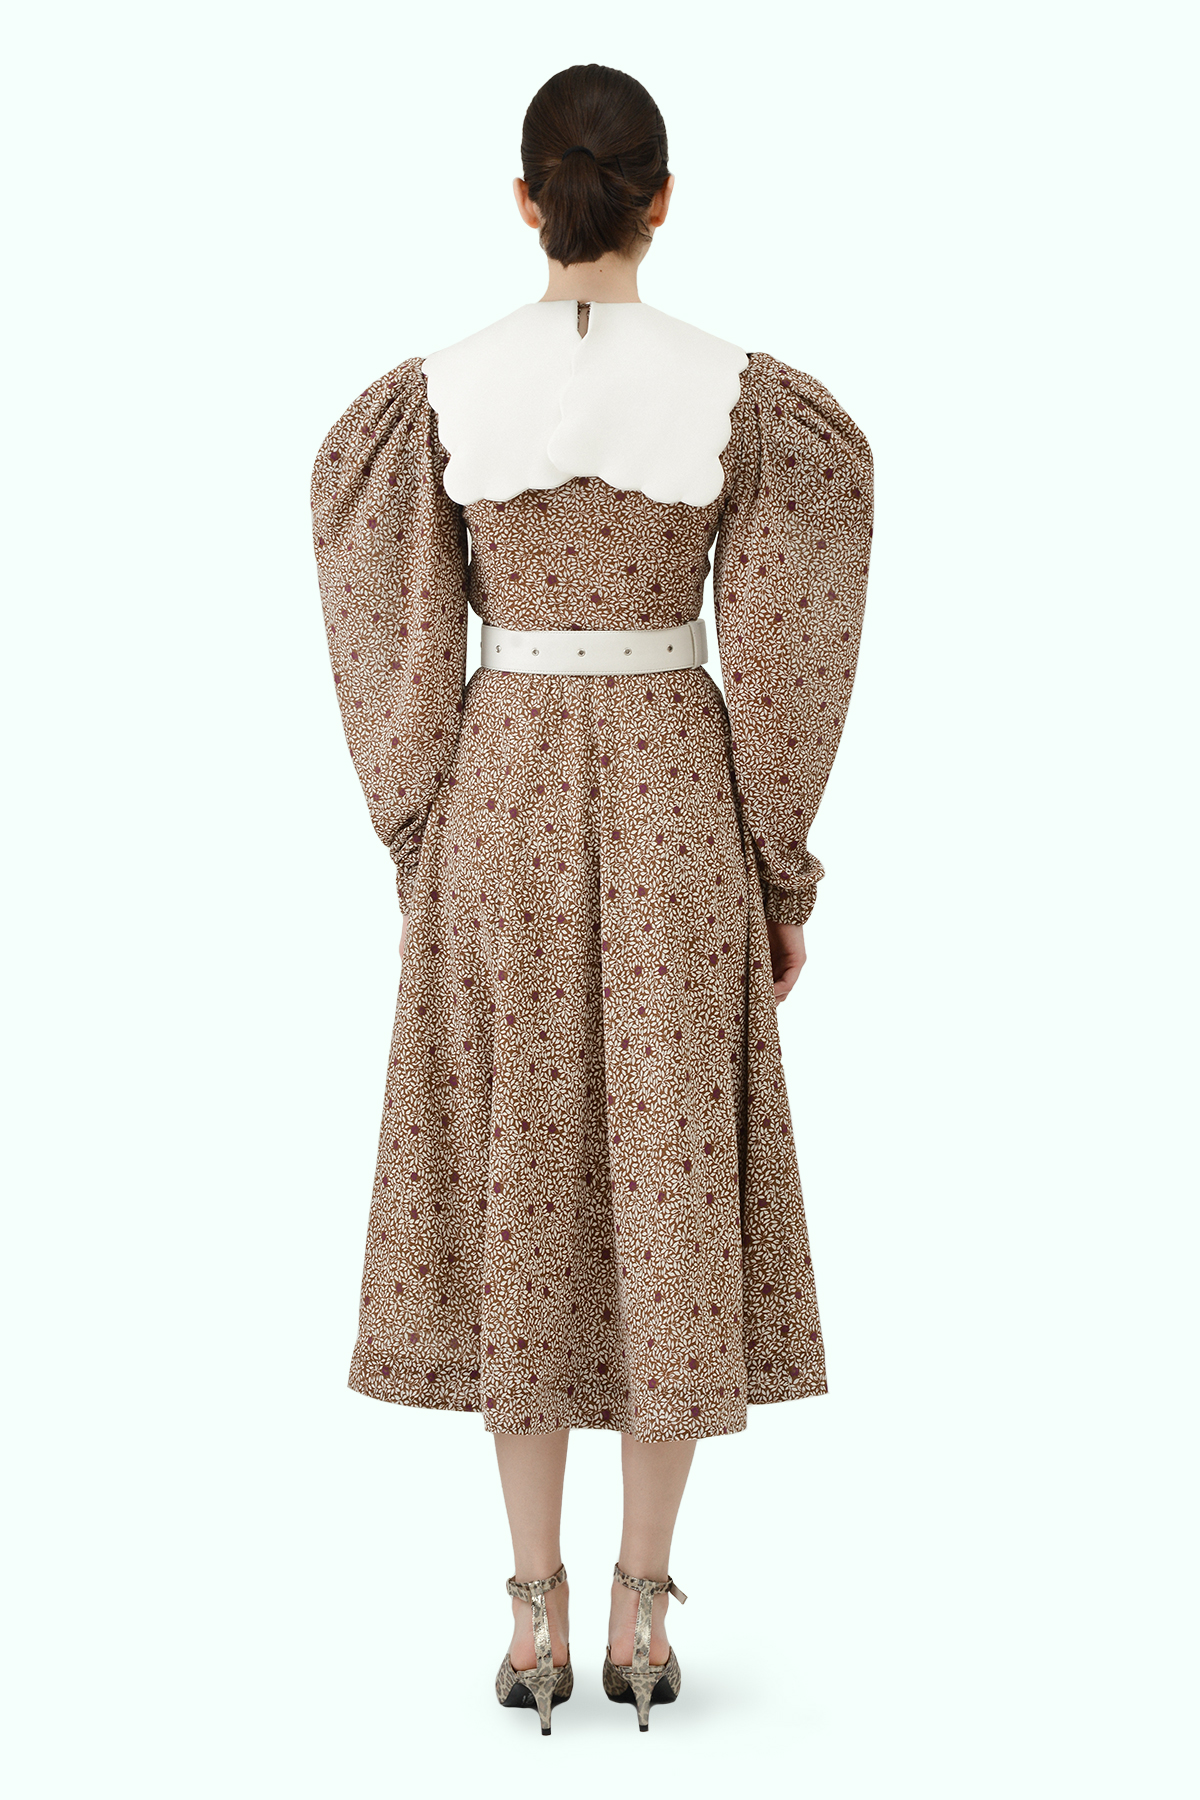 Floral print chiffon dress with puff sleeves and white vegan leather puritan collar 3